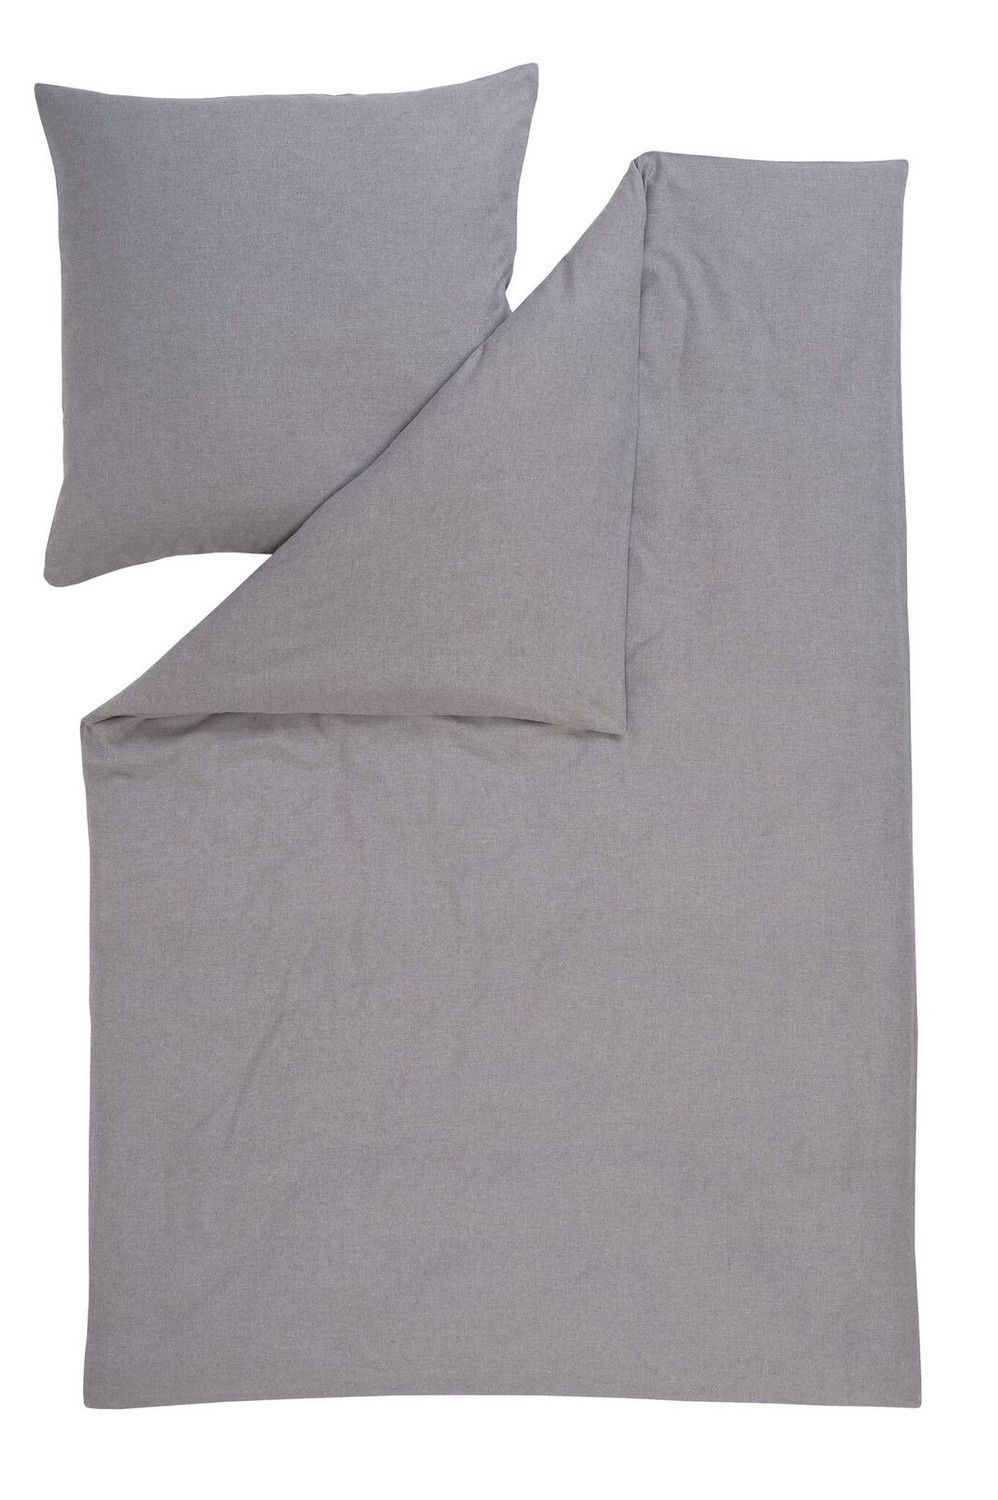 Bedding Wärmend Für Den Winter Estella Flanell Bettwäsche Latemar 5803 405 Vino Weich Home Furniture Diy Alpan Com Mk